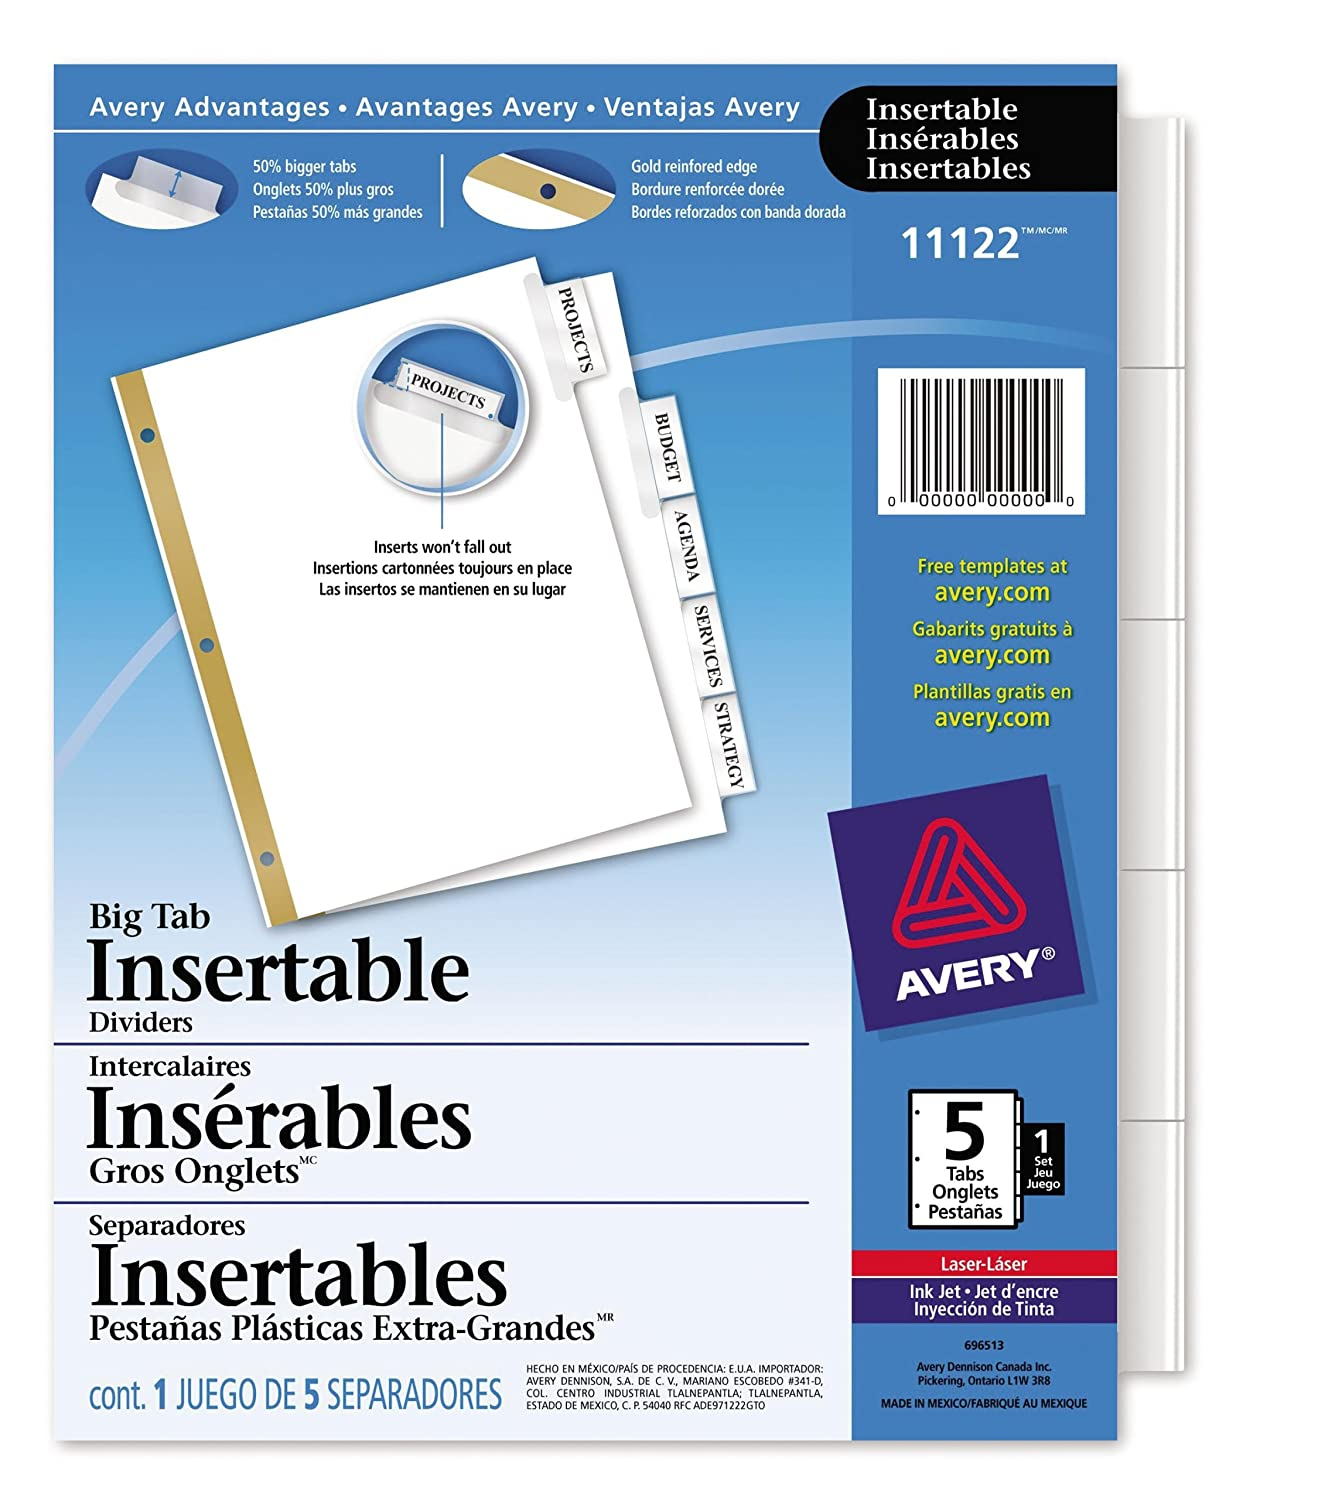 Avery Big Tab Insertable Dividers for Laser and Inkjet Printers, 5 tabs, Clear, 1 Set, (11122) 67933111227